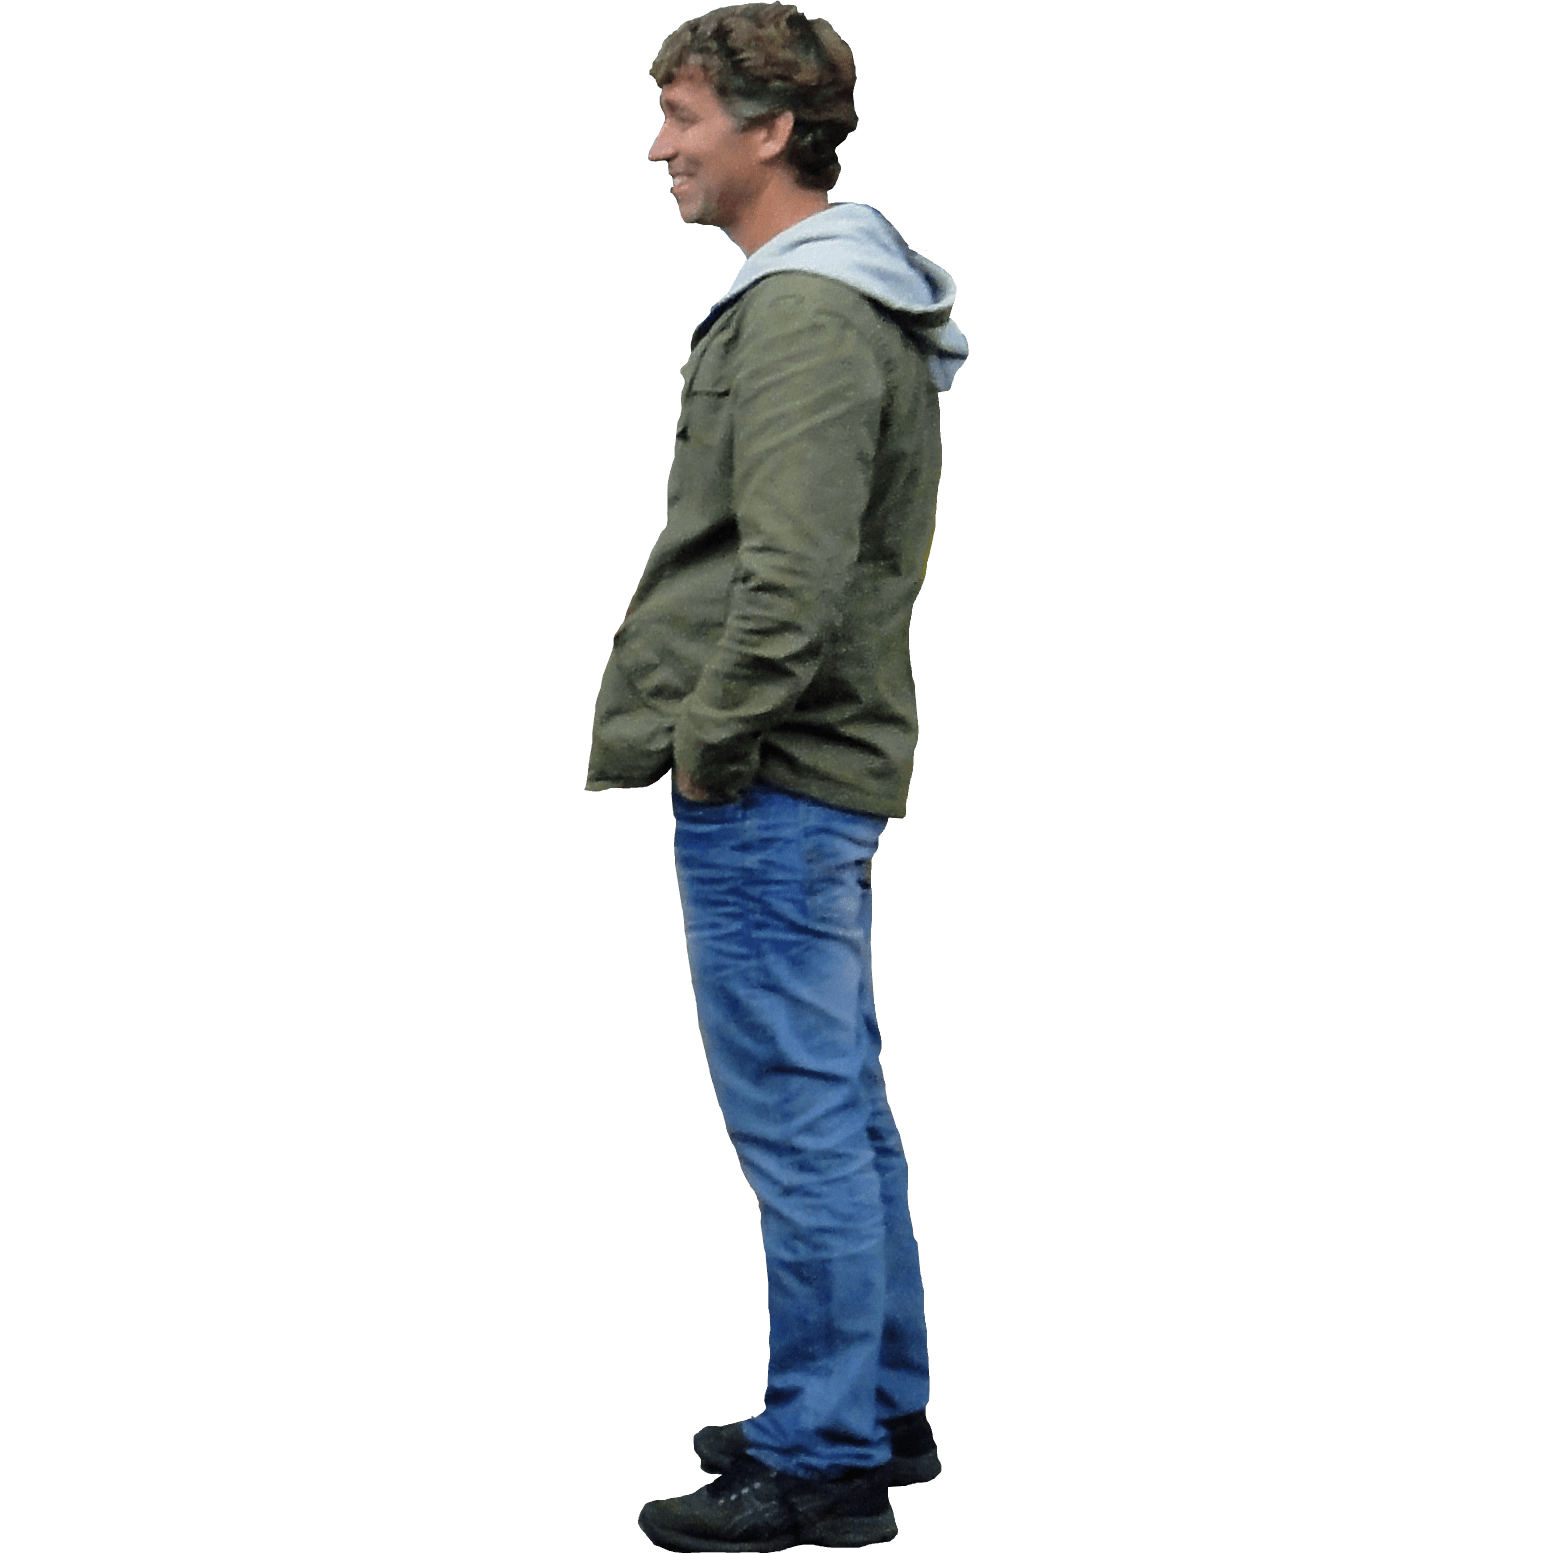 Man Png Image PNG Image - Free PNG HD Images Of People